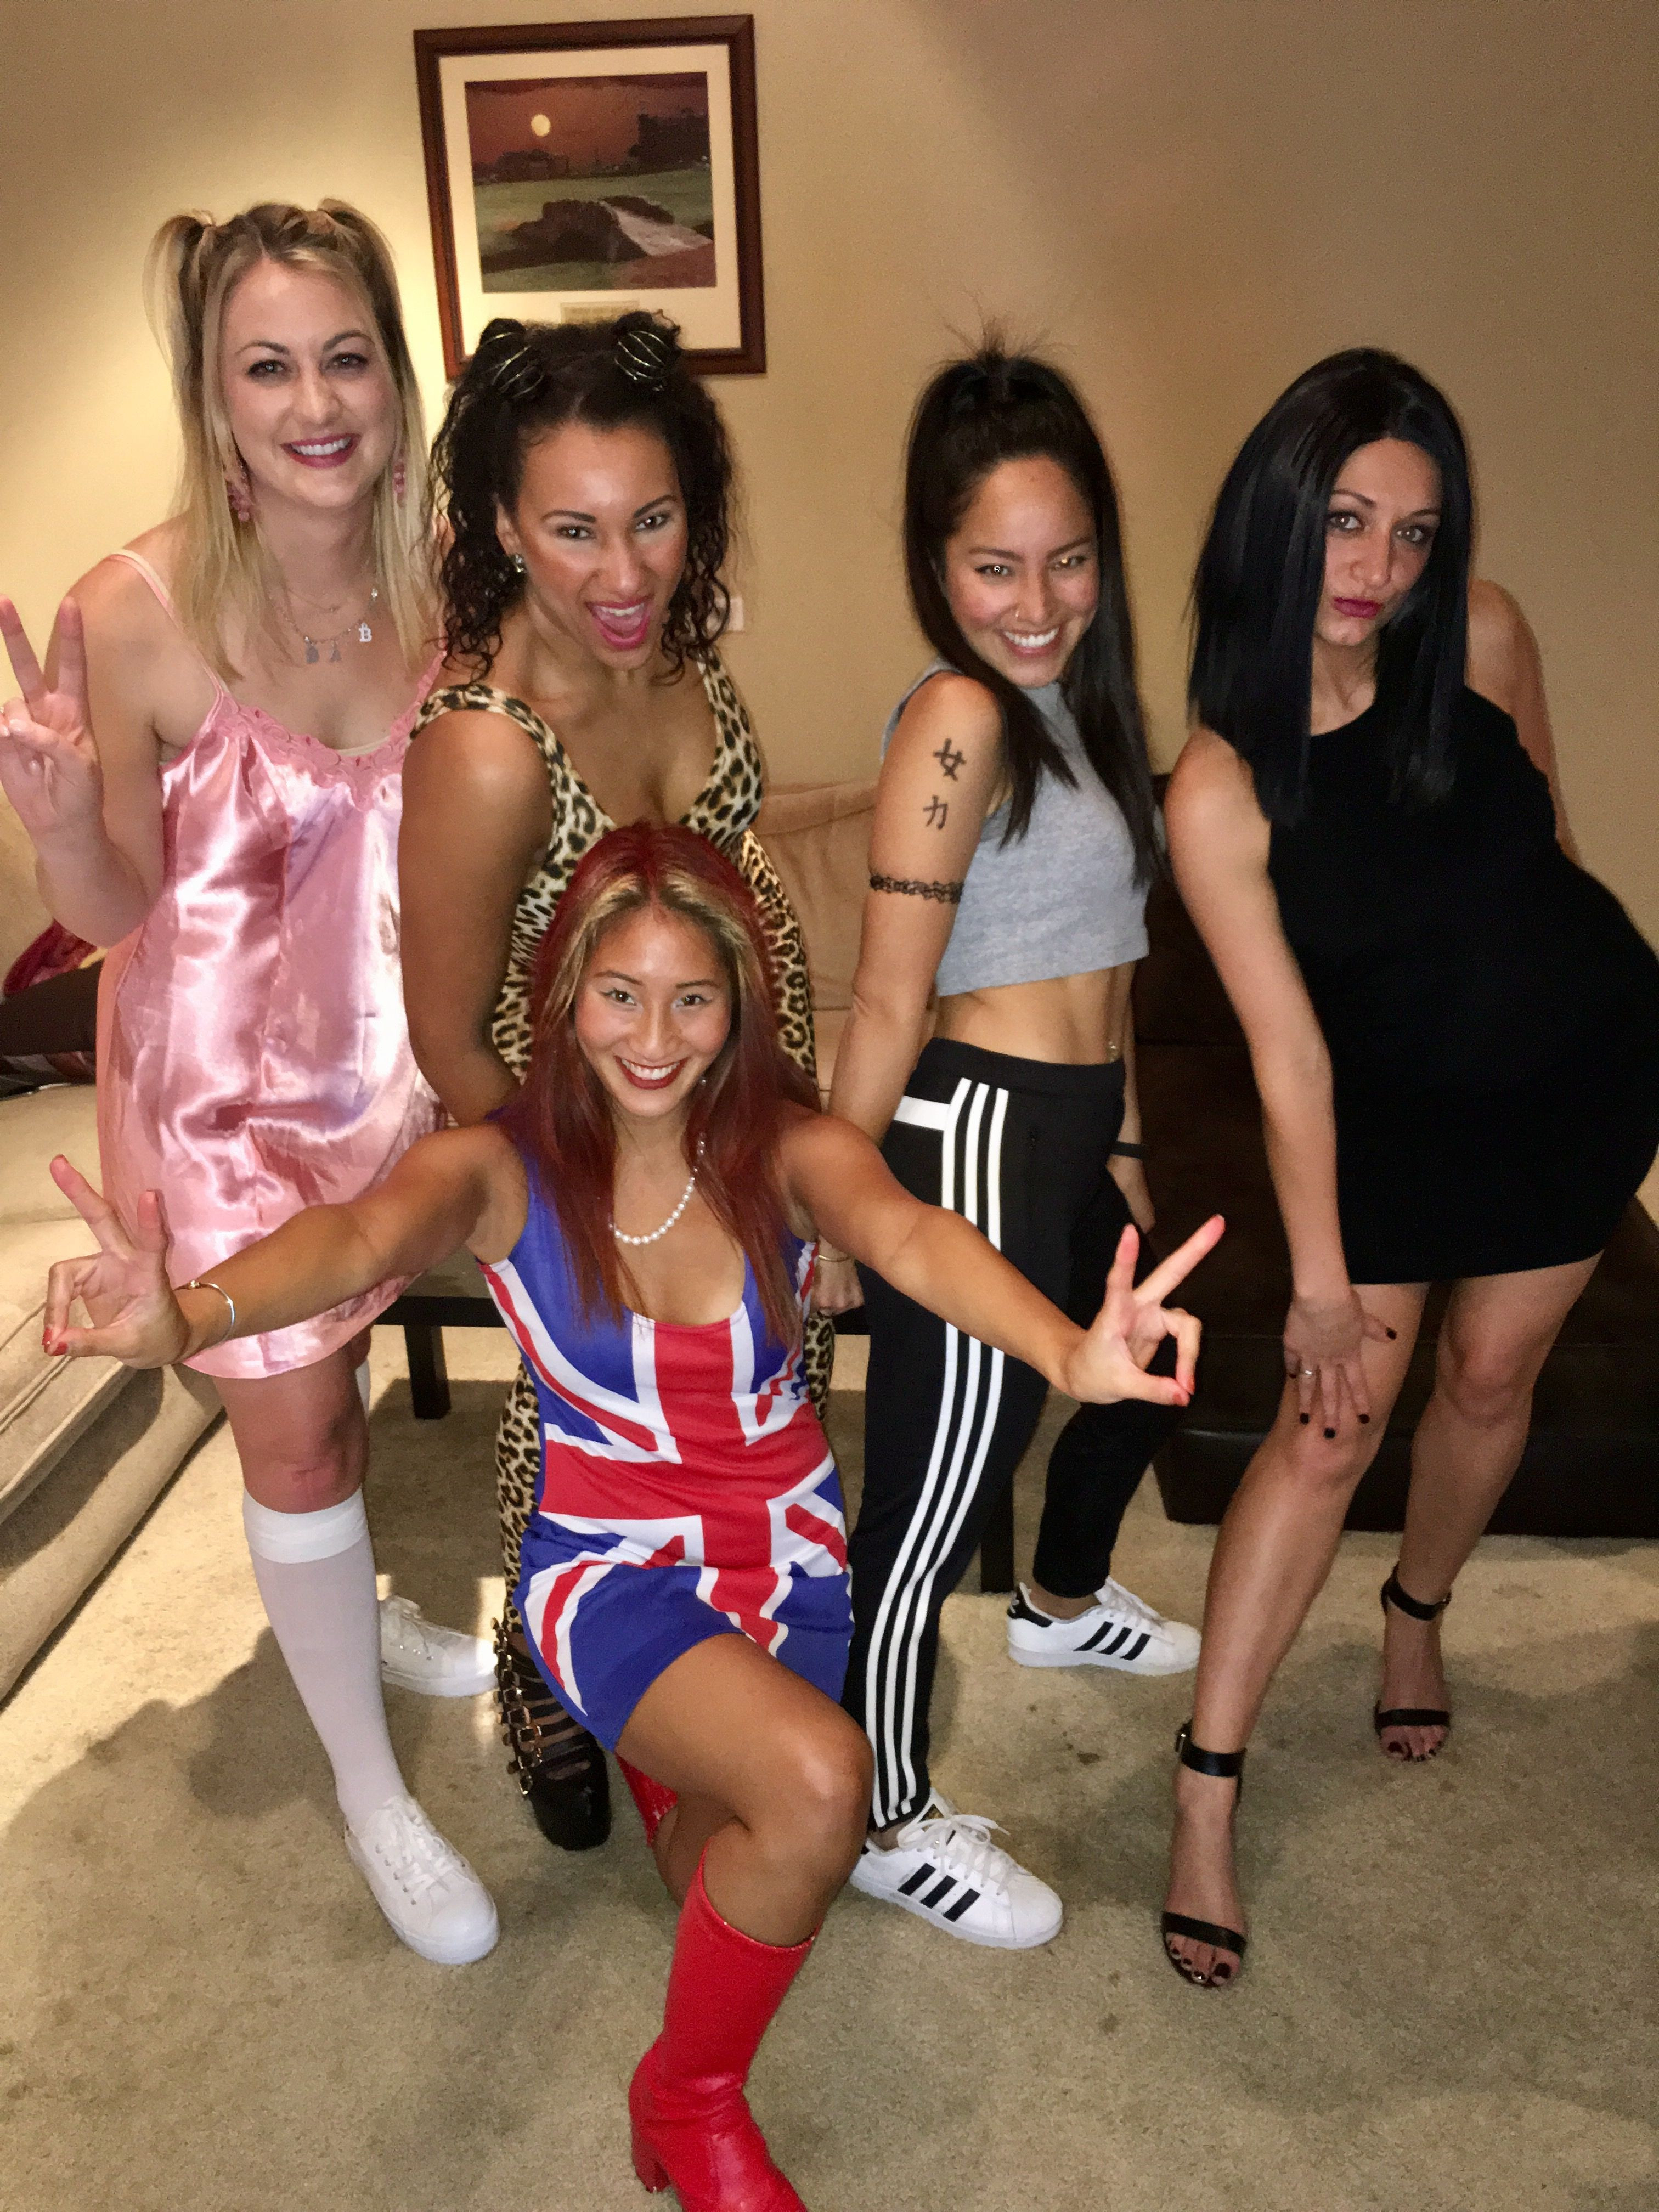 Halloween Party Ideas For Girls  Spice girls group Halloween costume Party Time